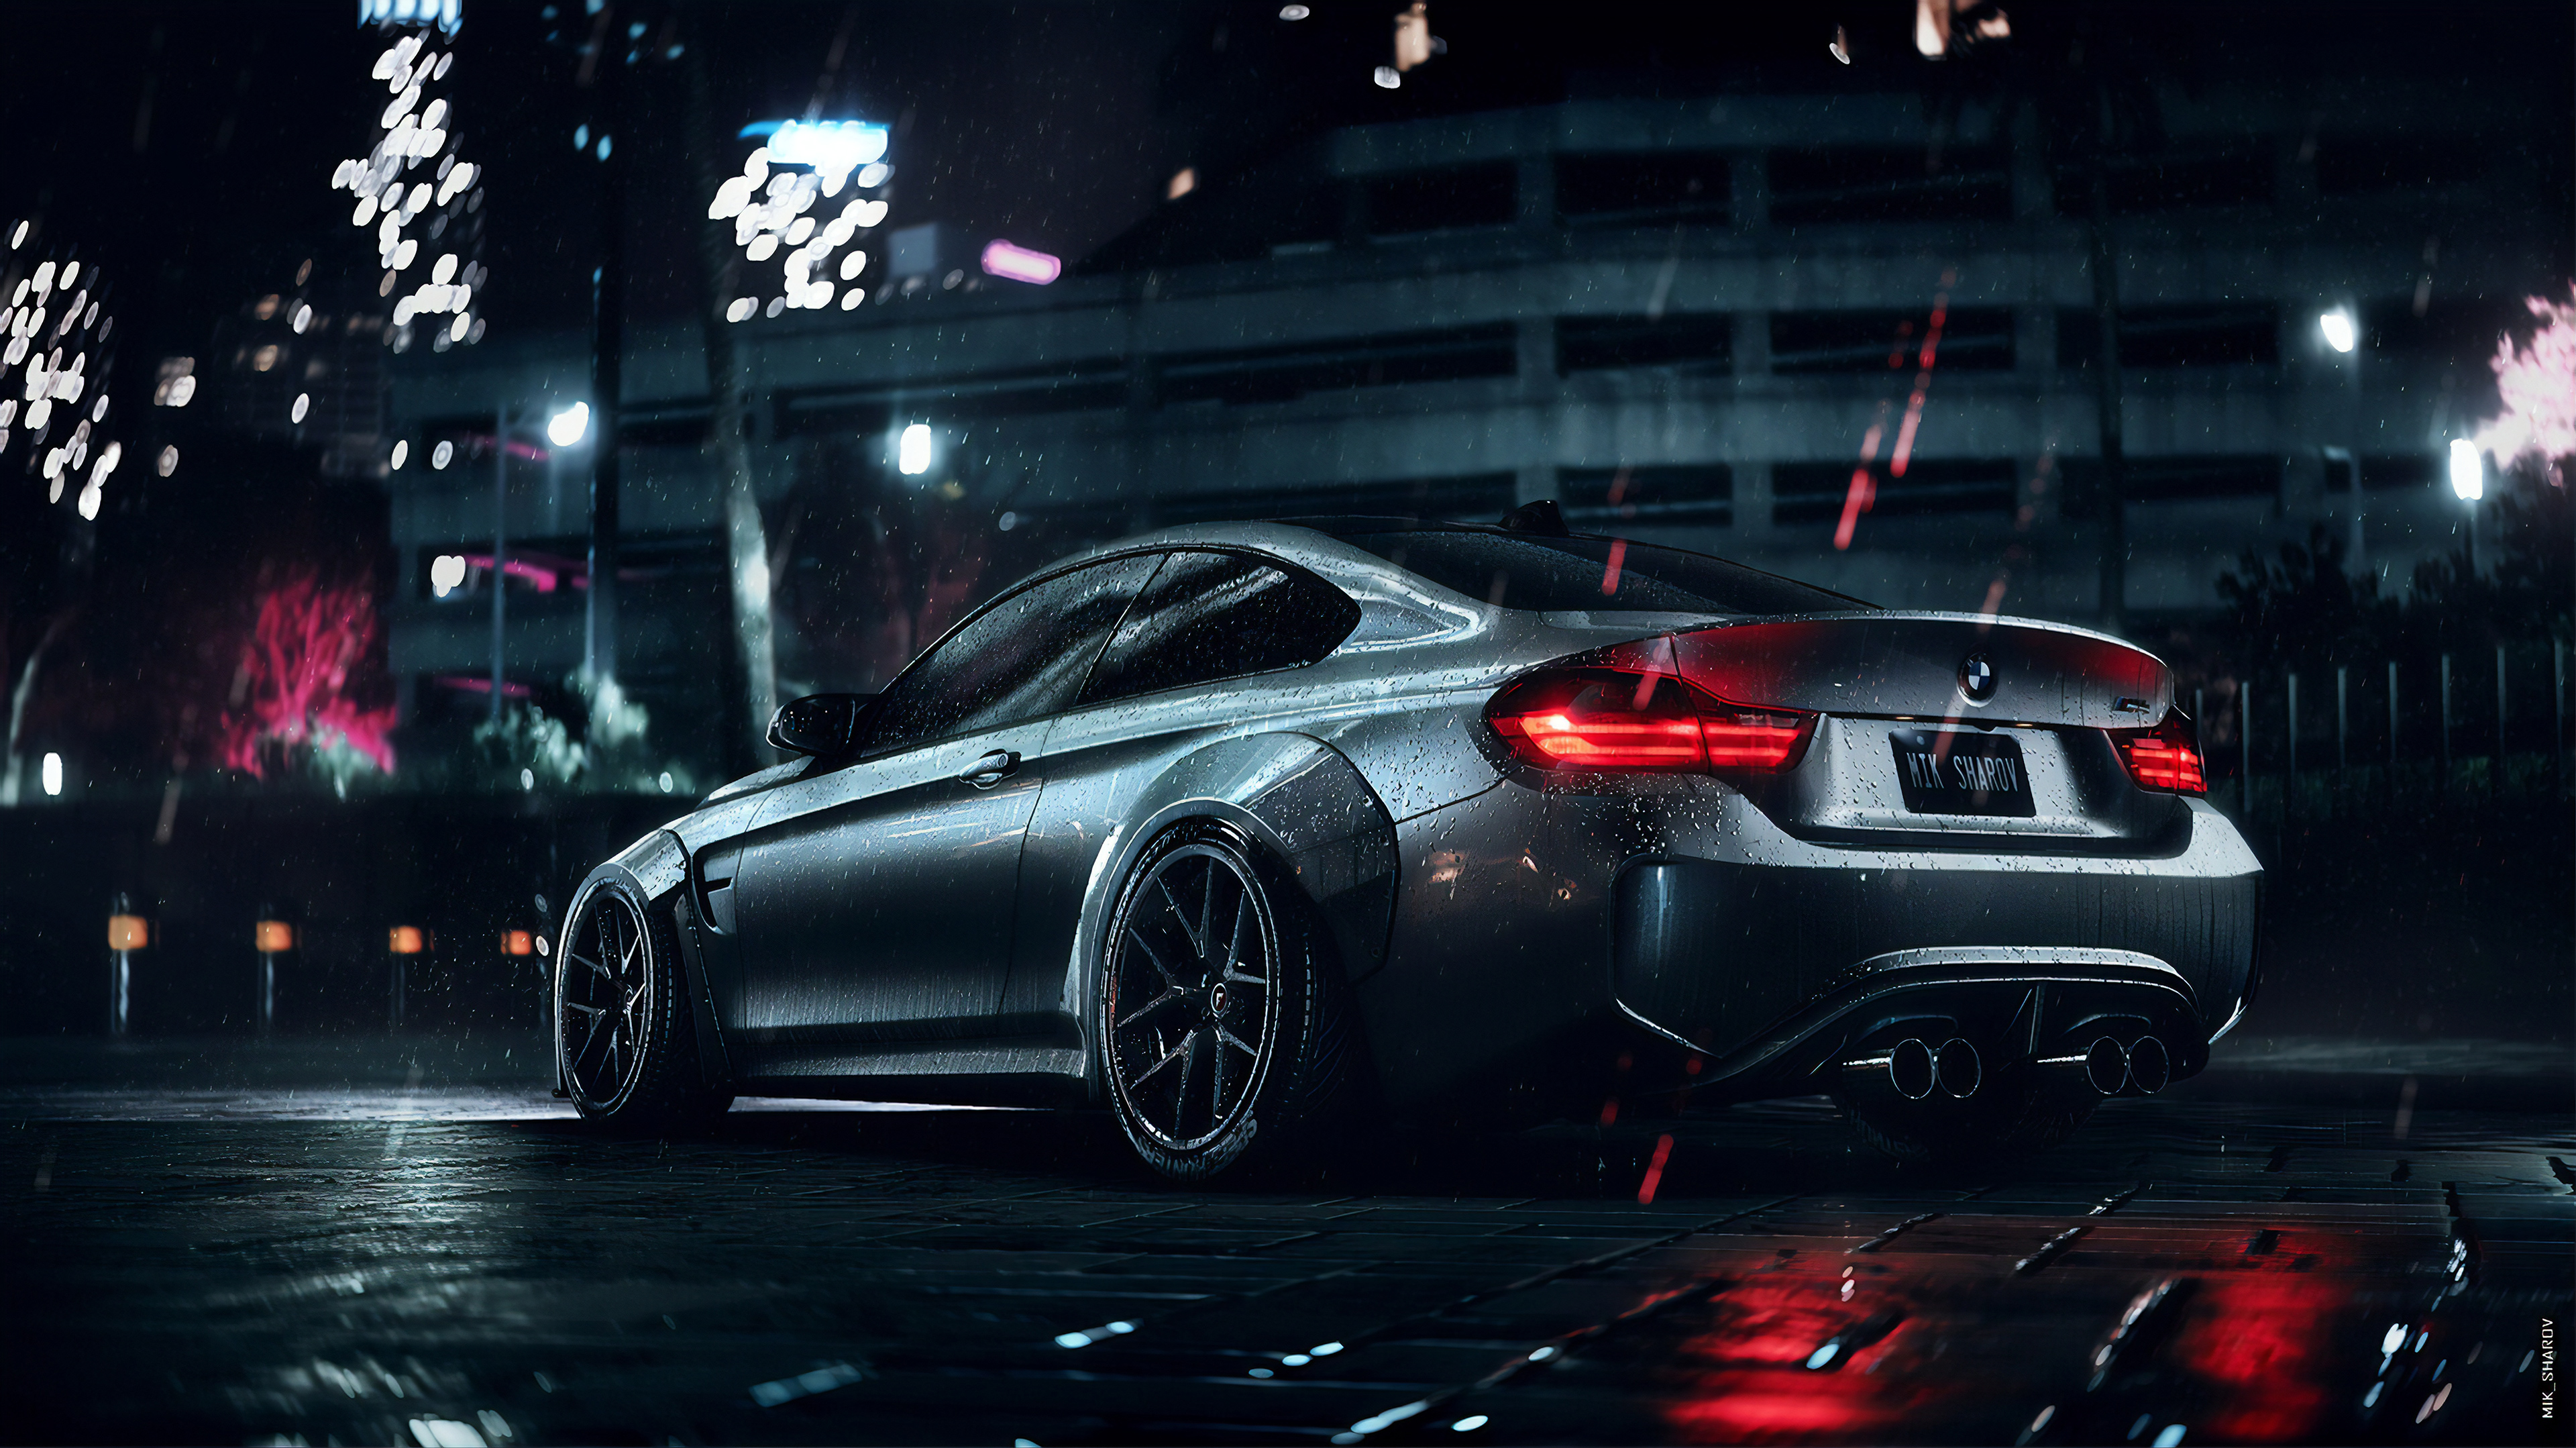 Need For Speed Bmw Dark Night 4k, HD Games, 4k Wallpapers ...